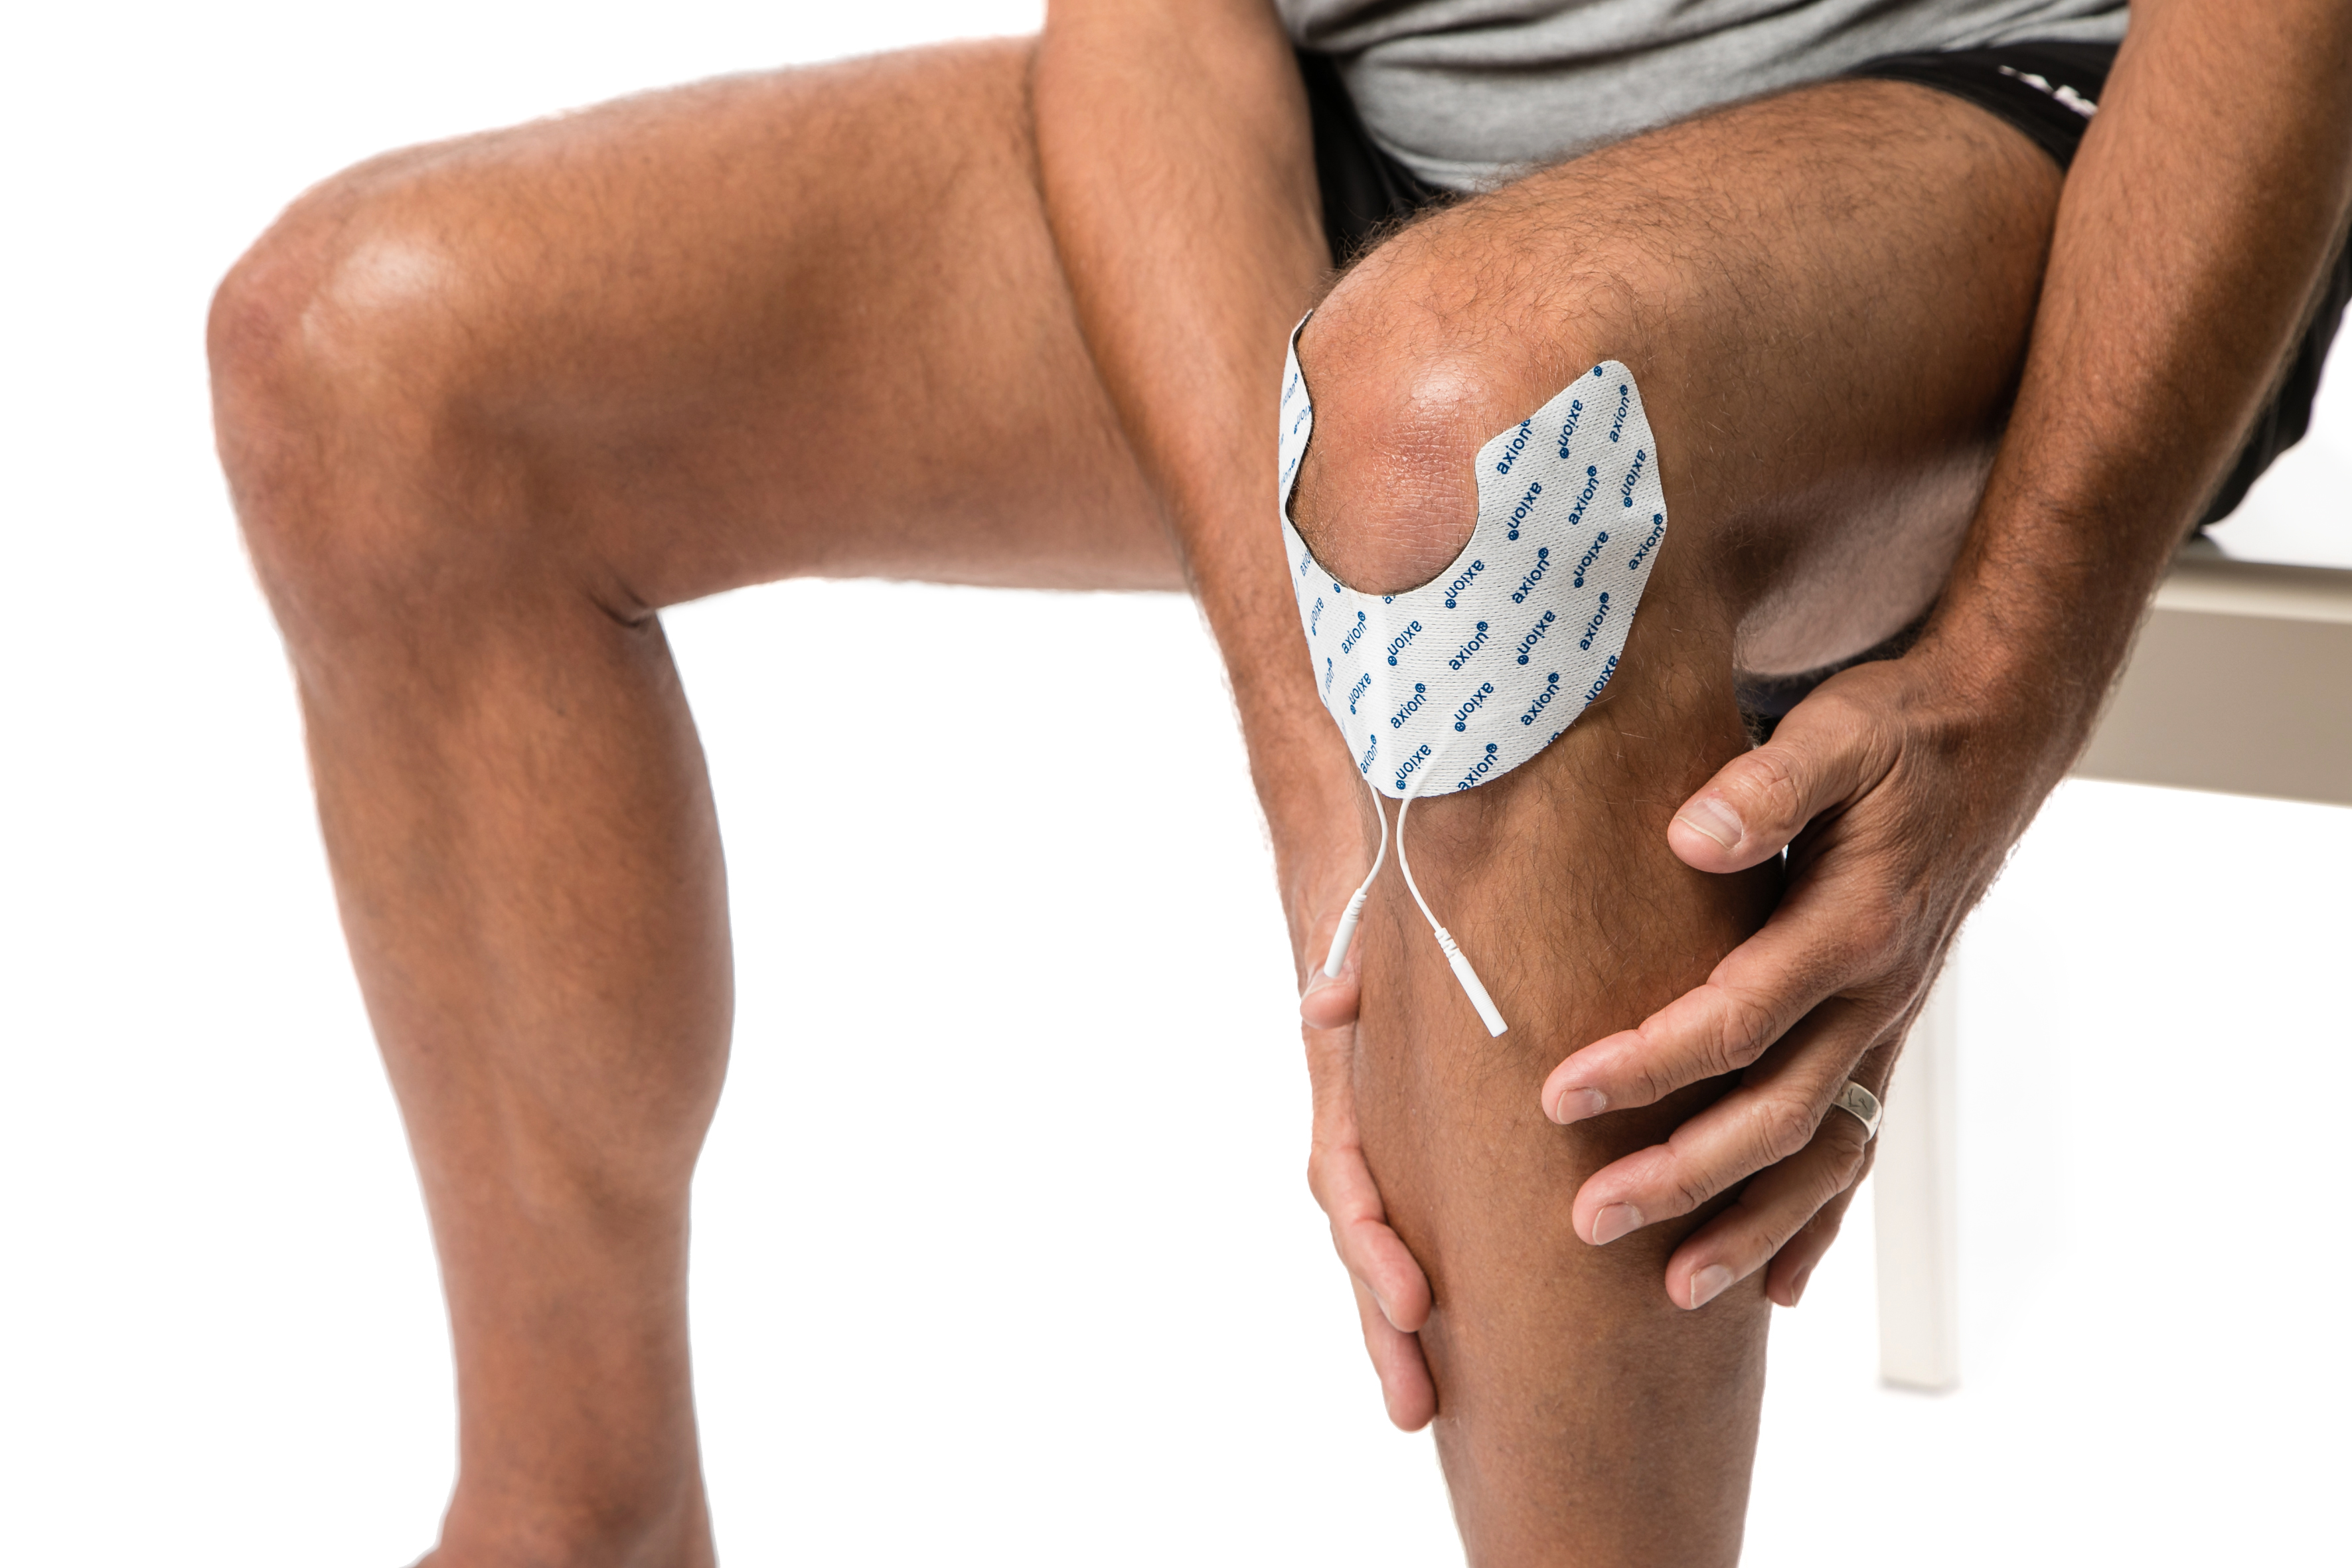 TENS-knee-joint-electrodes